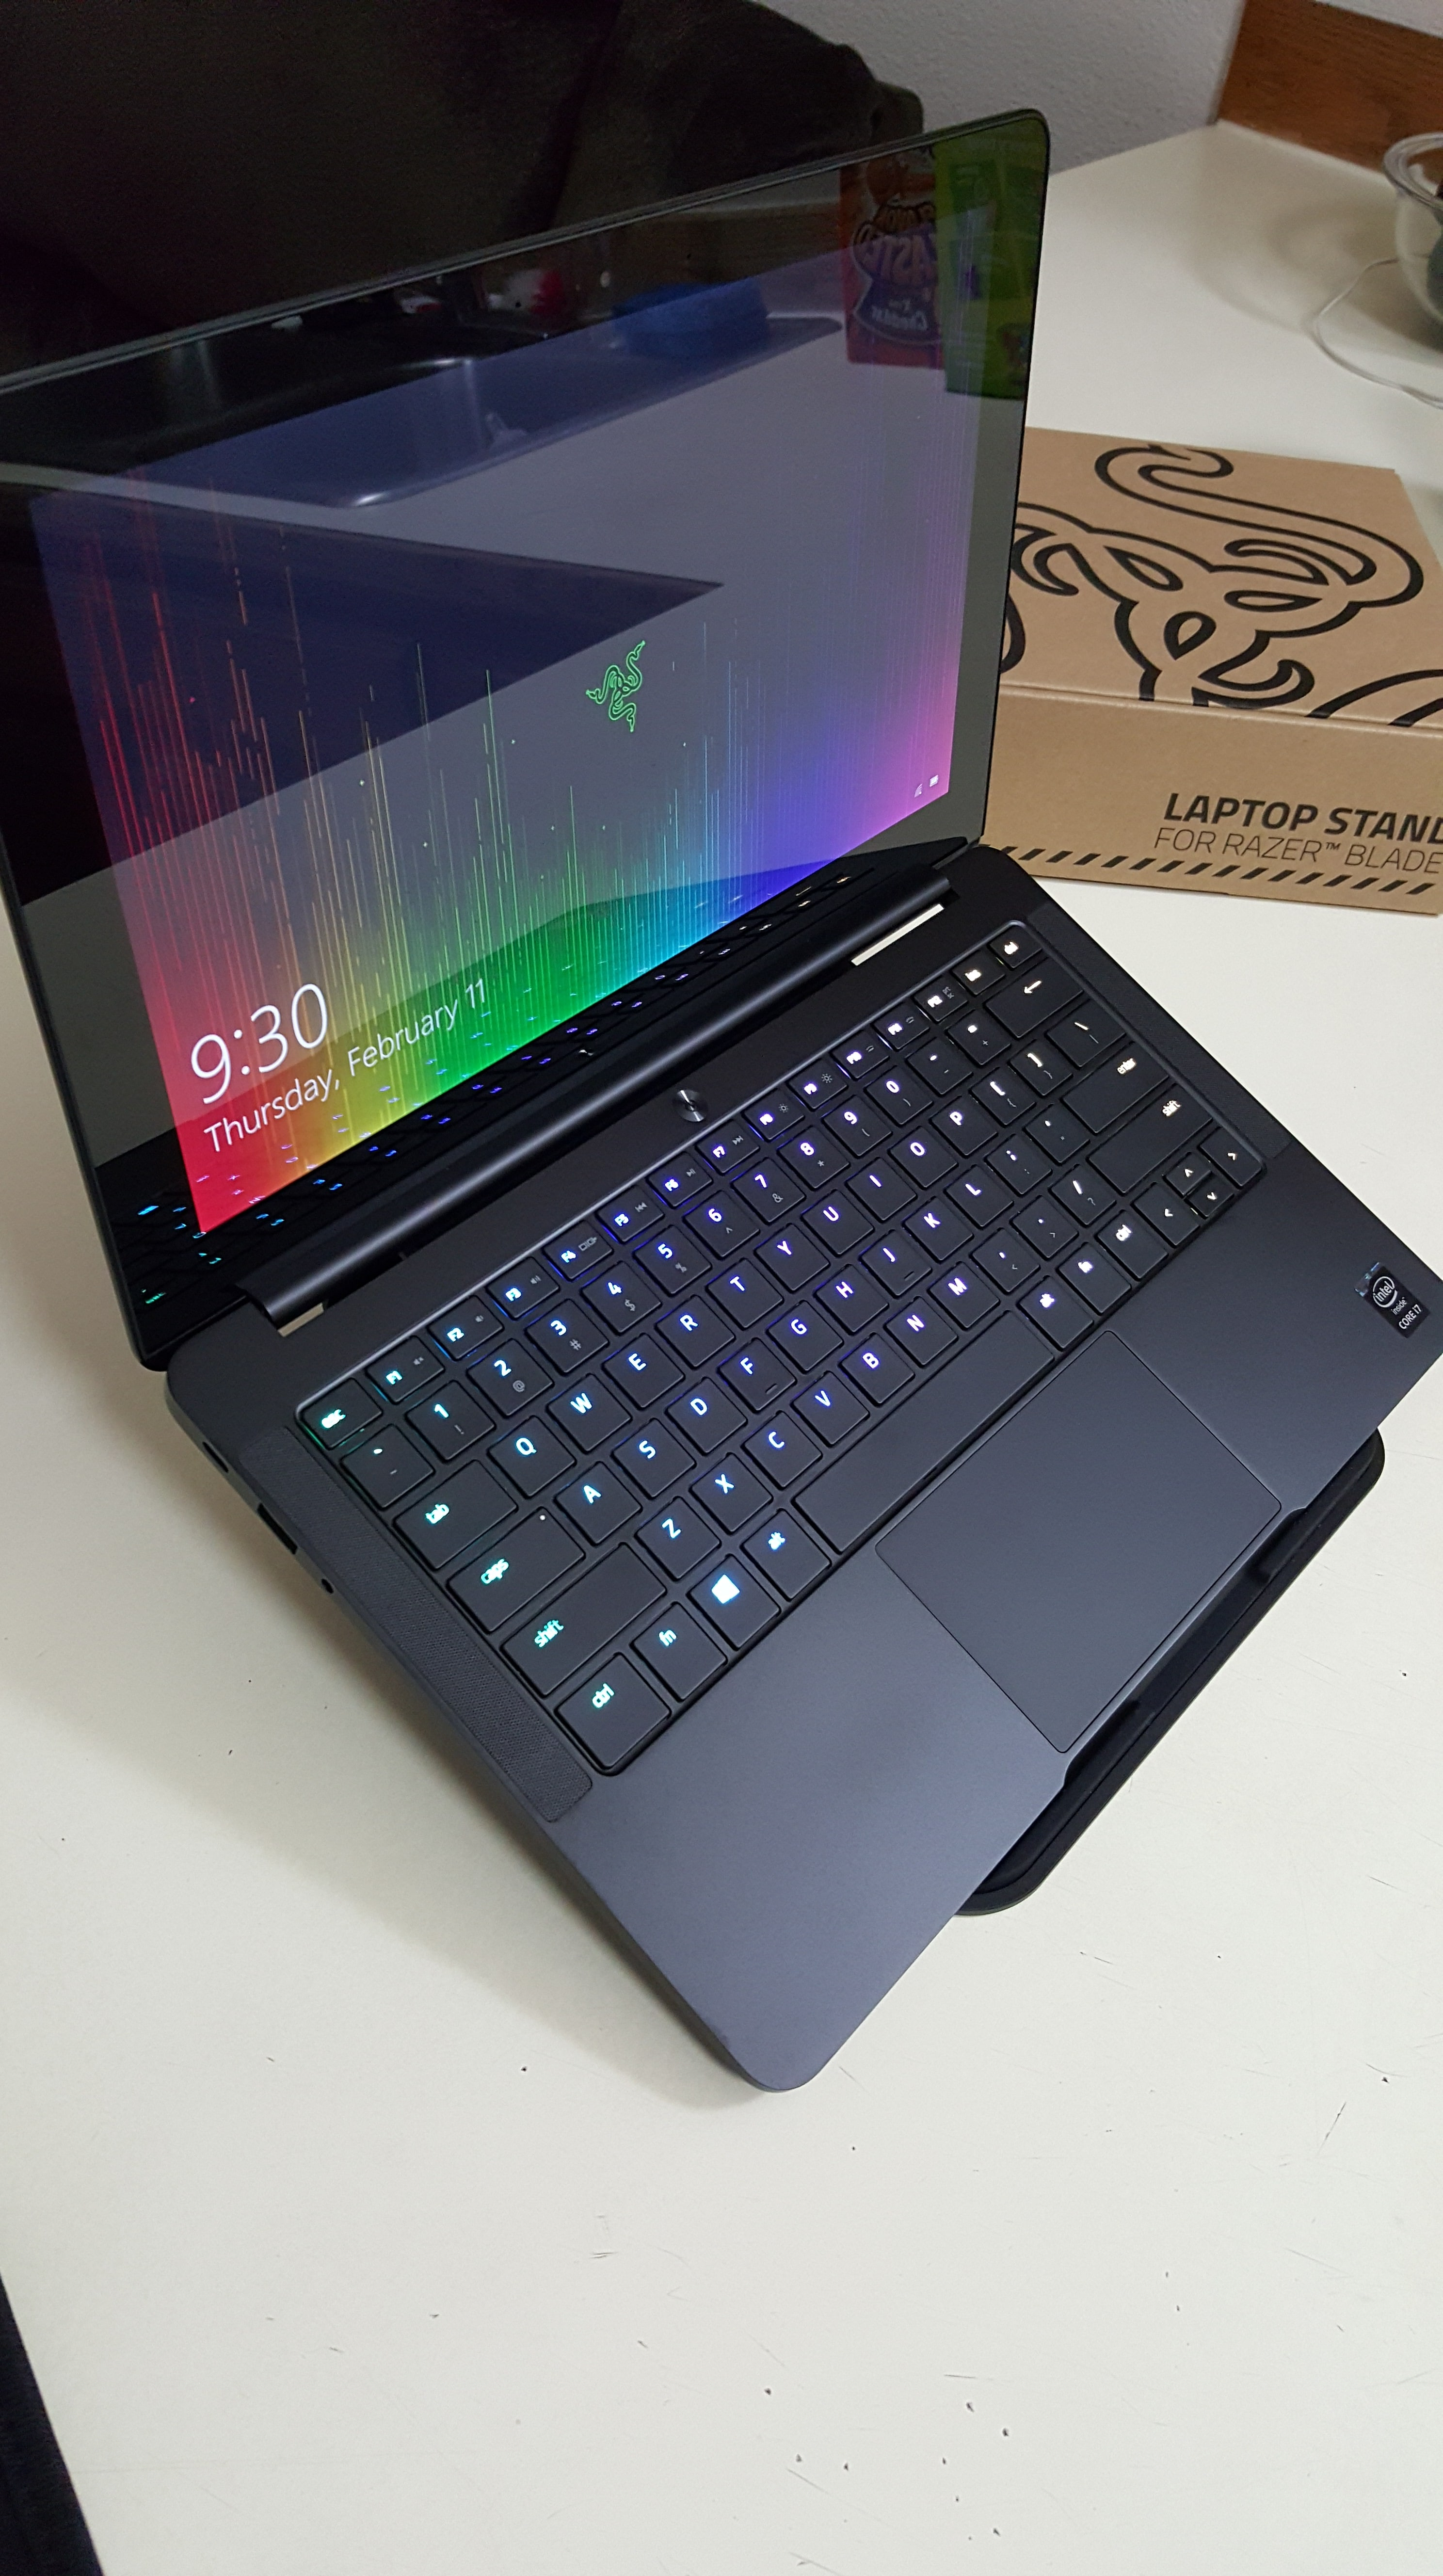 New Laptop Stand For Razer Blade Stealth Page 2